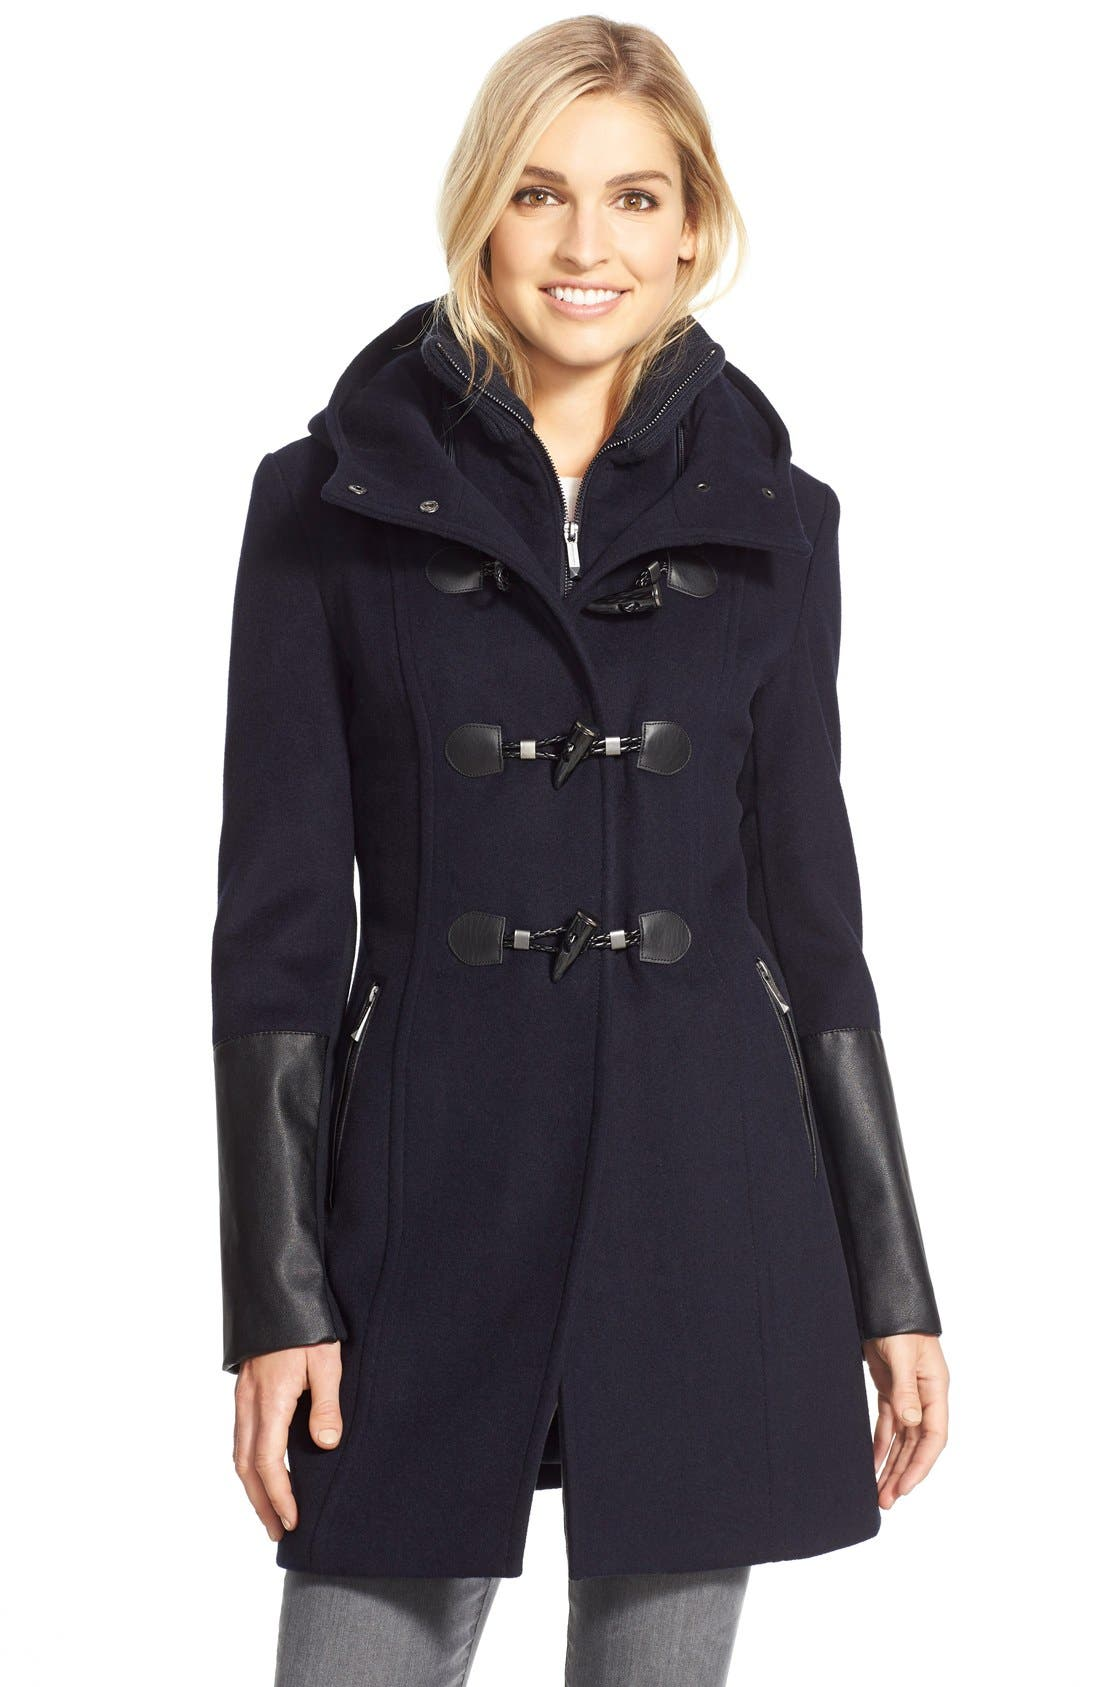 Faux Leather Trim Wool Blend Duffle Coat with Inset Bib,                         Main,                         color, Navy